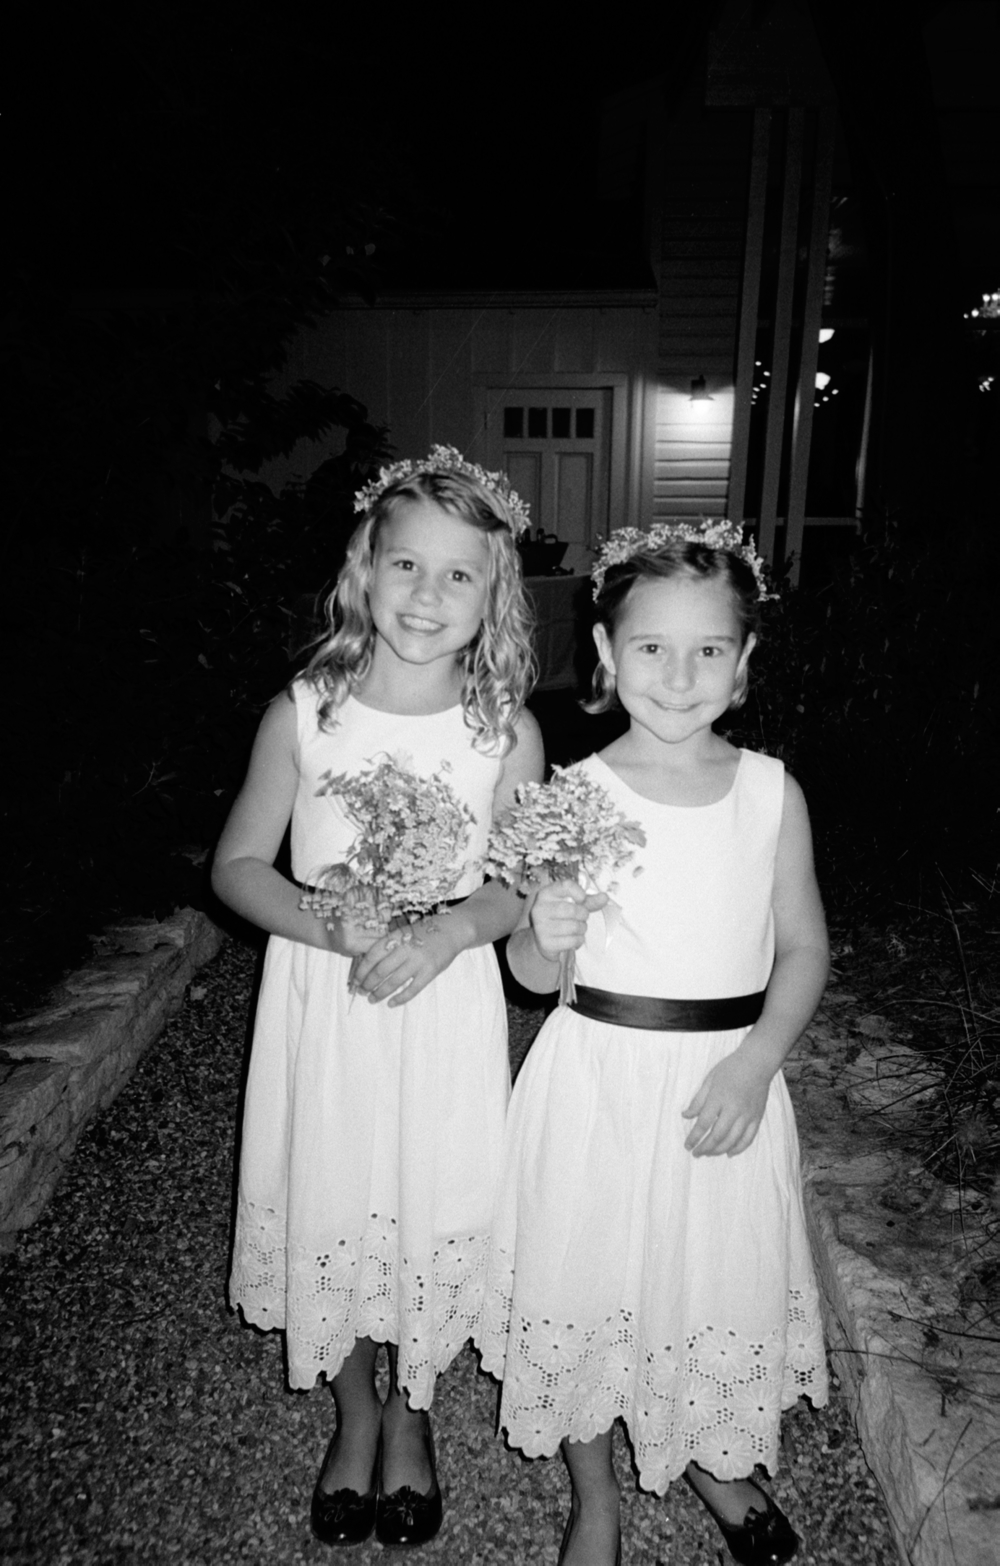 Flower girls. Austin, TX. 10.3.14                                                                                                                                                                                      Photo by Josh Makela